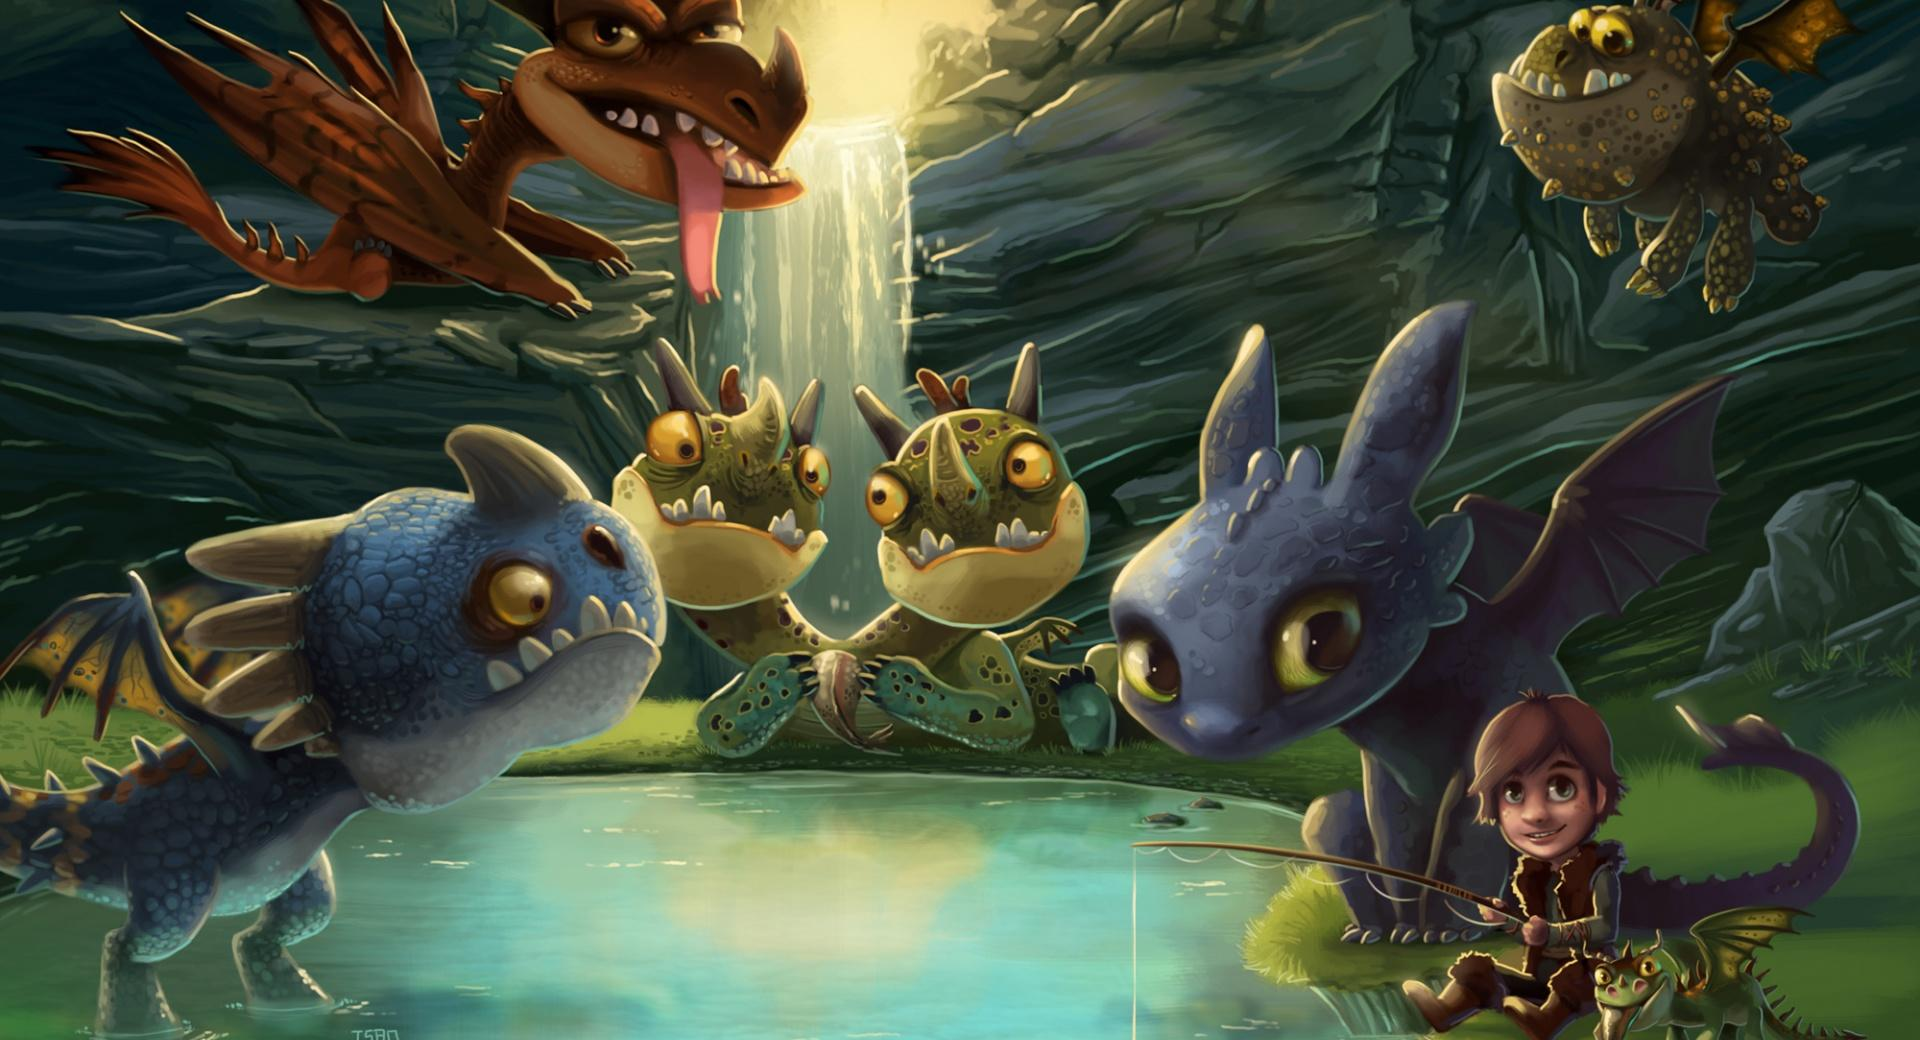 Hiccup, Toothless and friends wallpapers HD quality